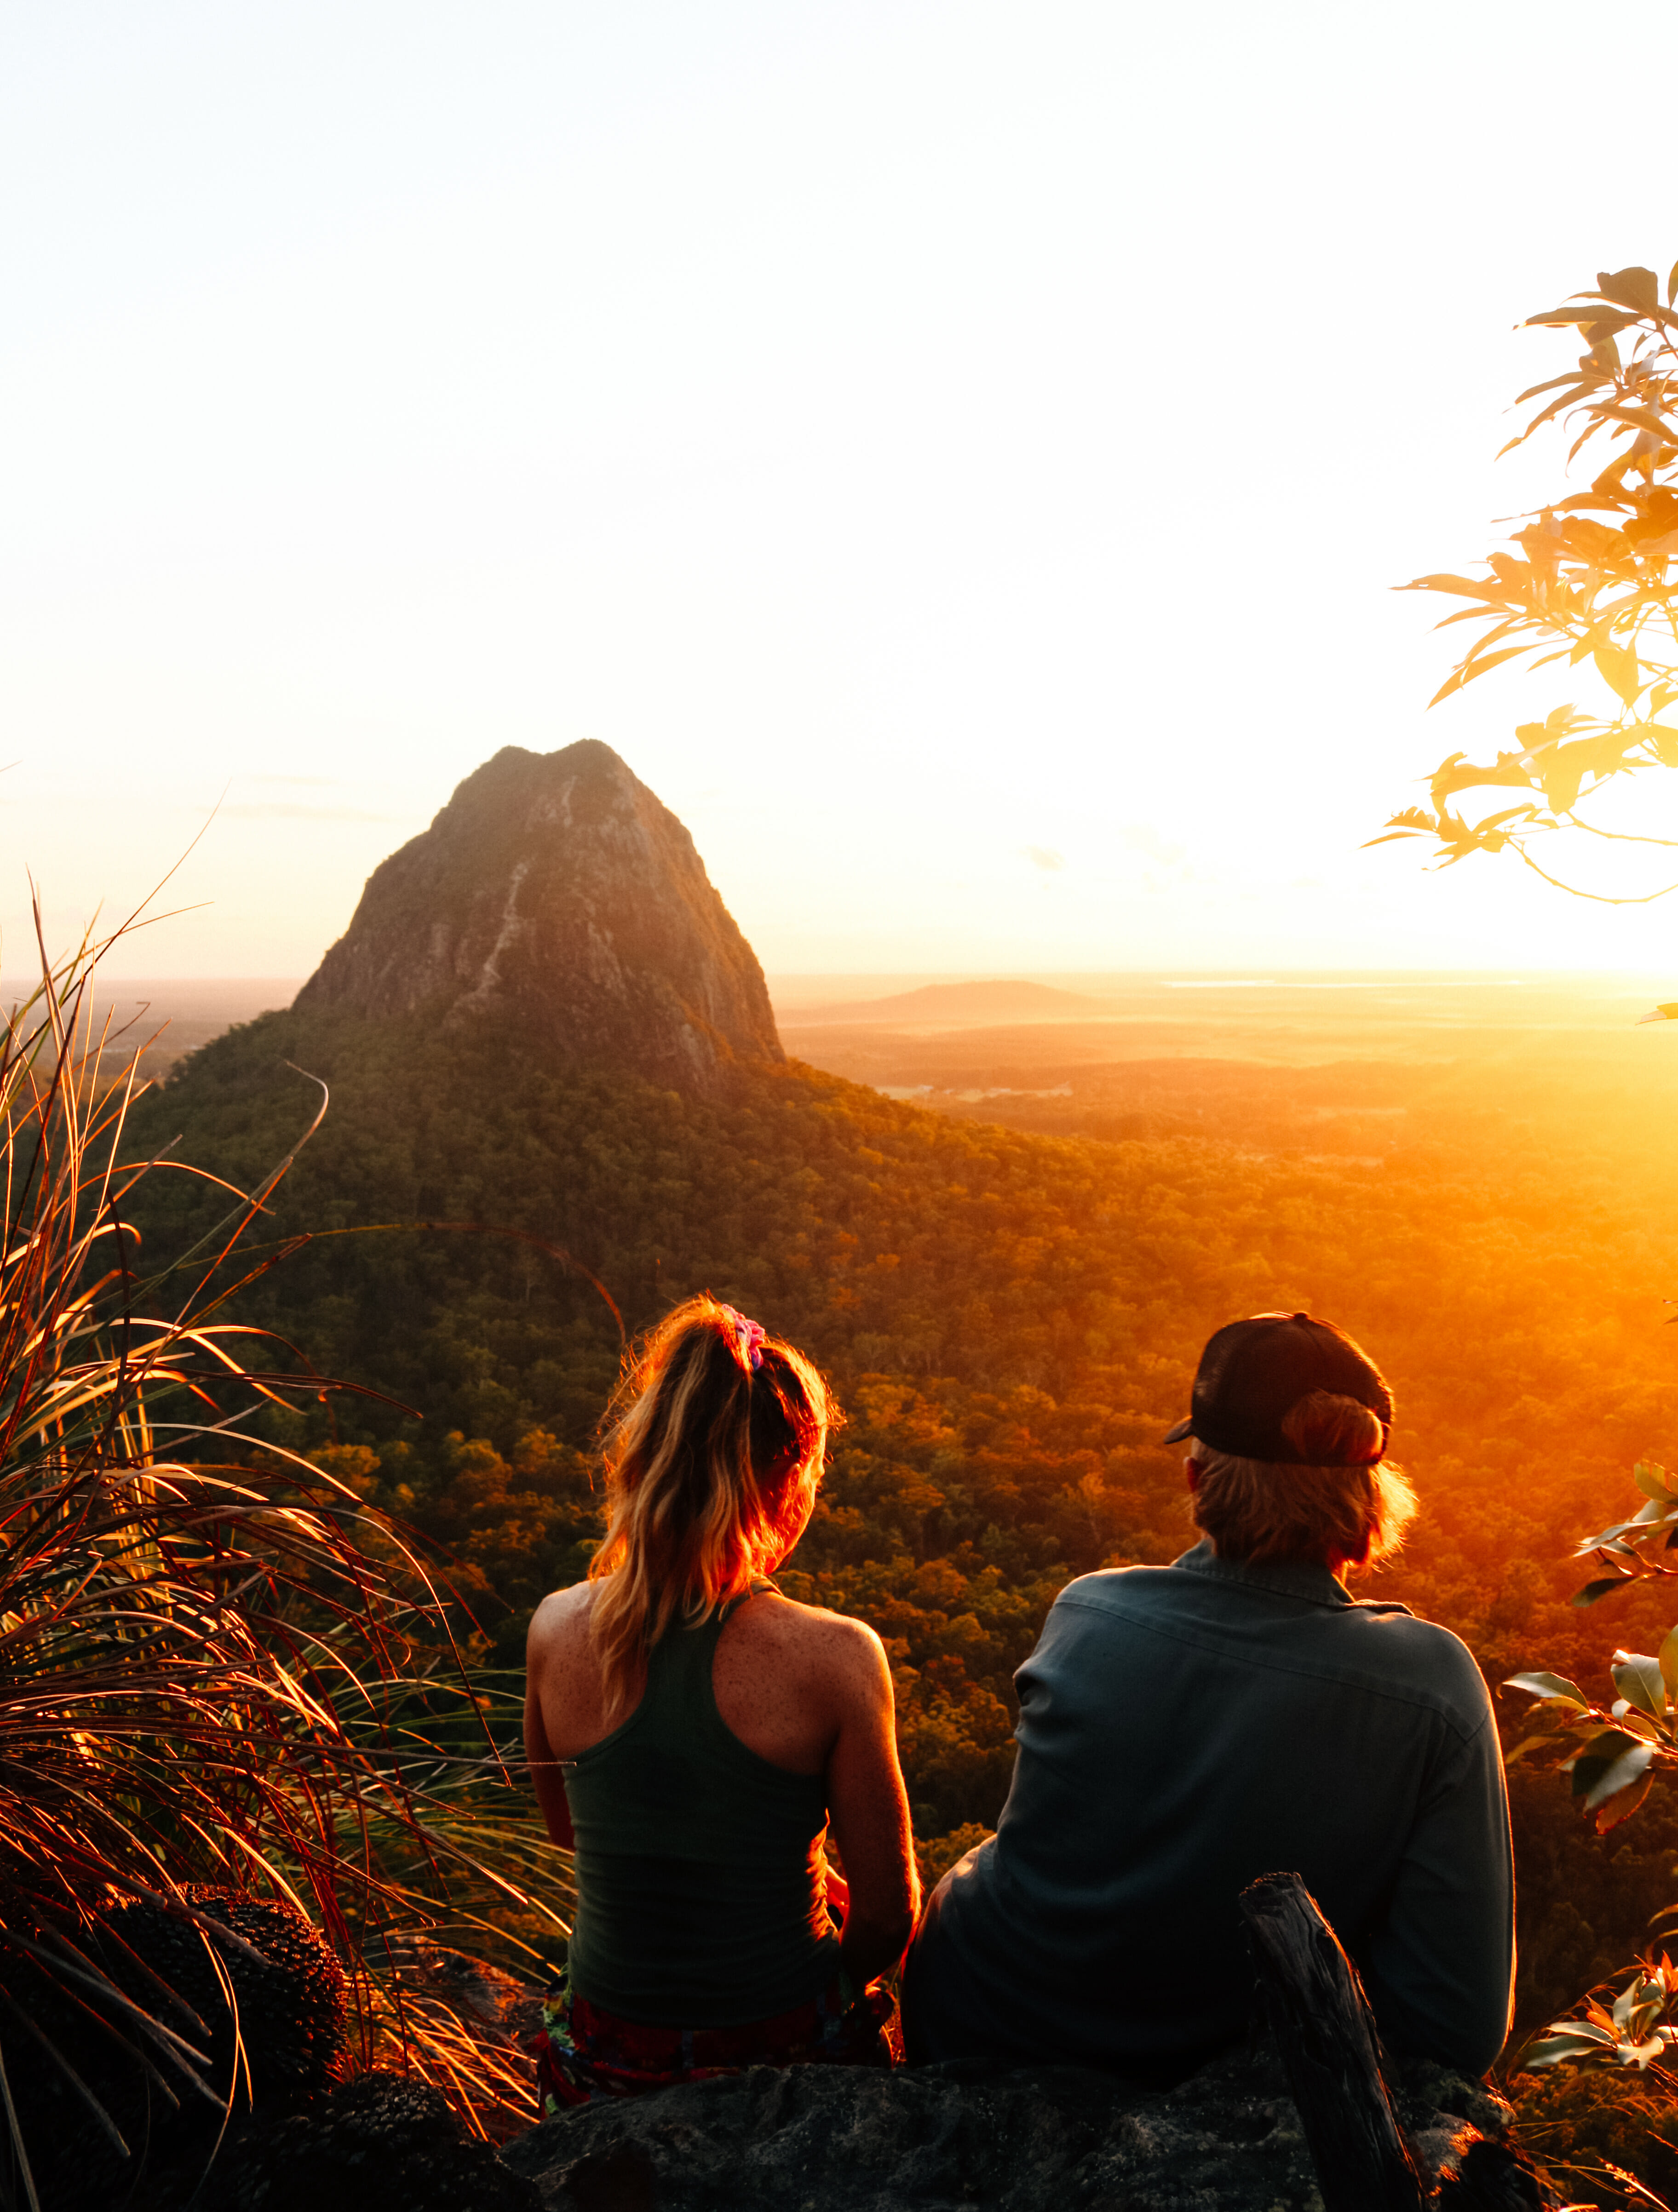 Glass House Mountains by Scout Hinchcliffe